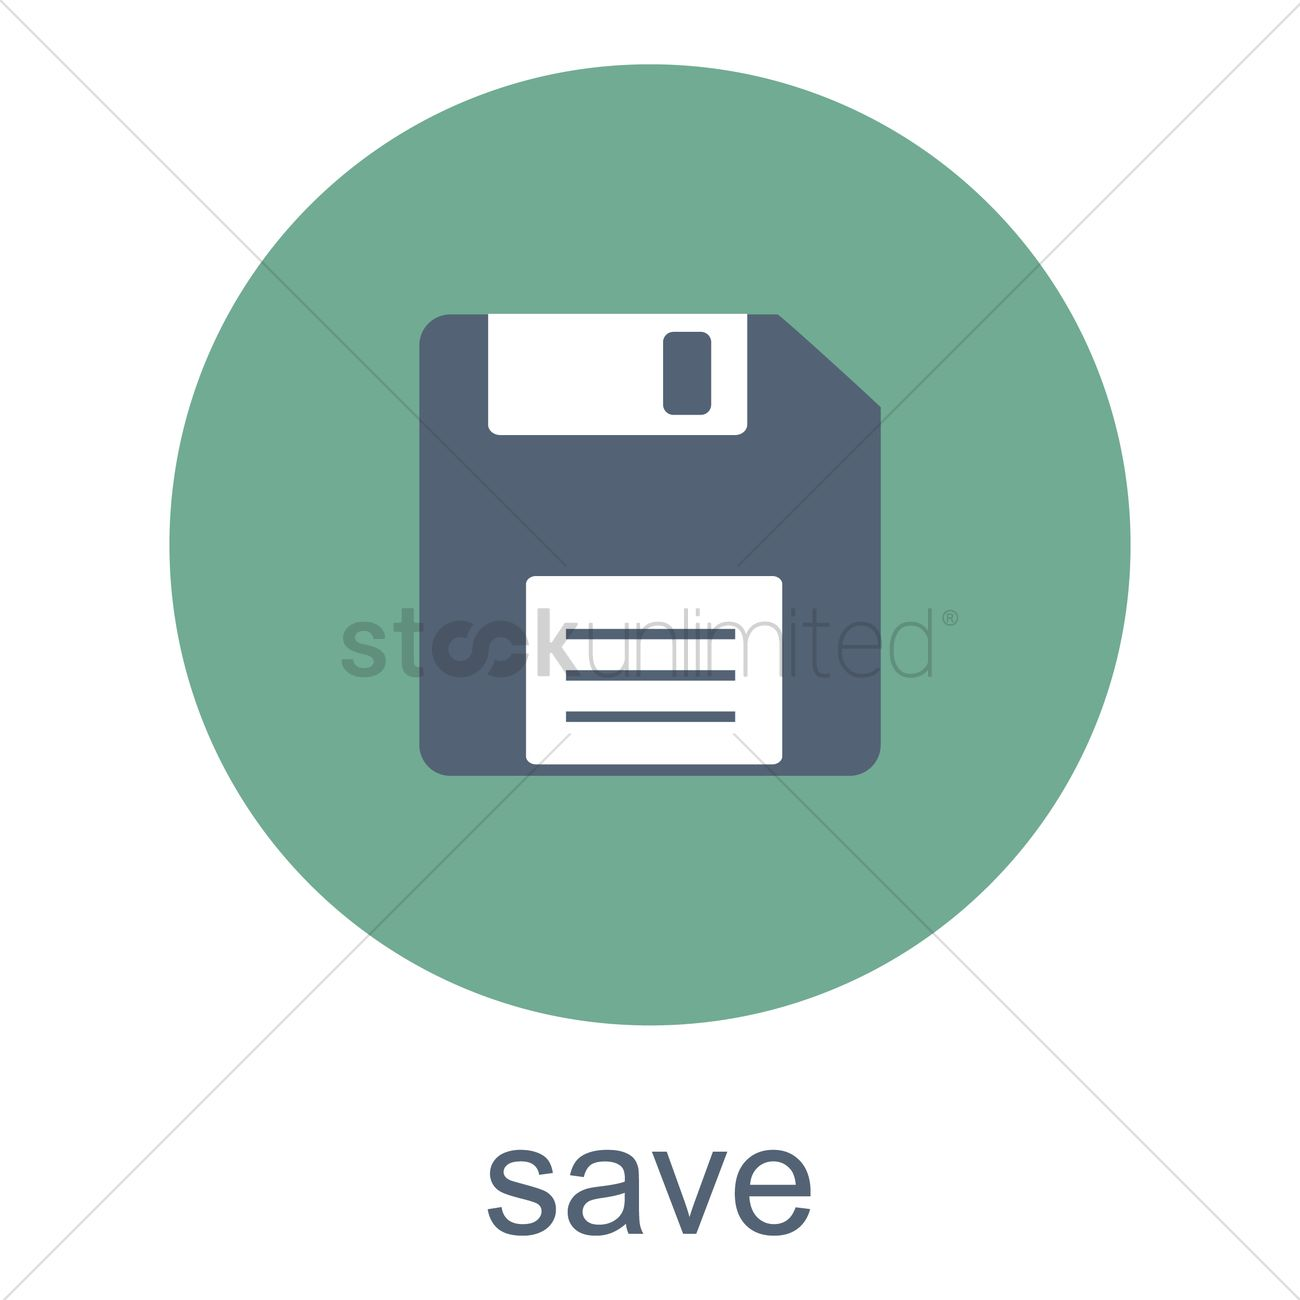 1300x1300 Save Button Vector Image